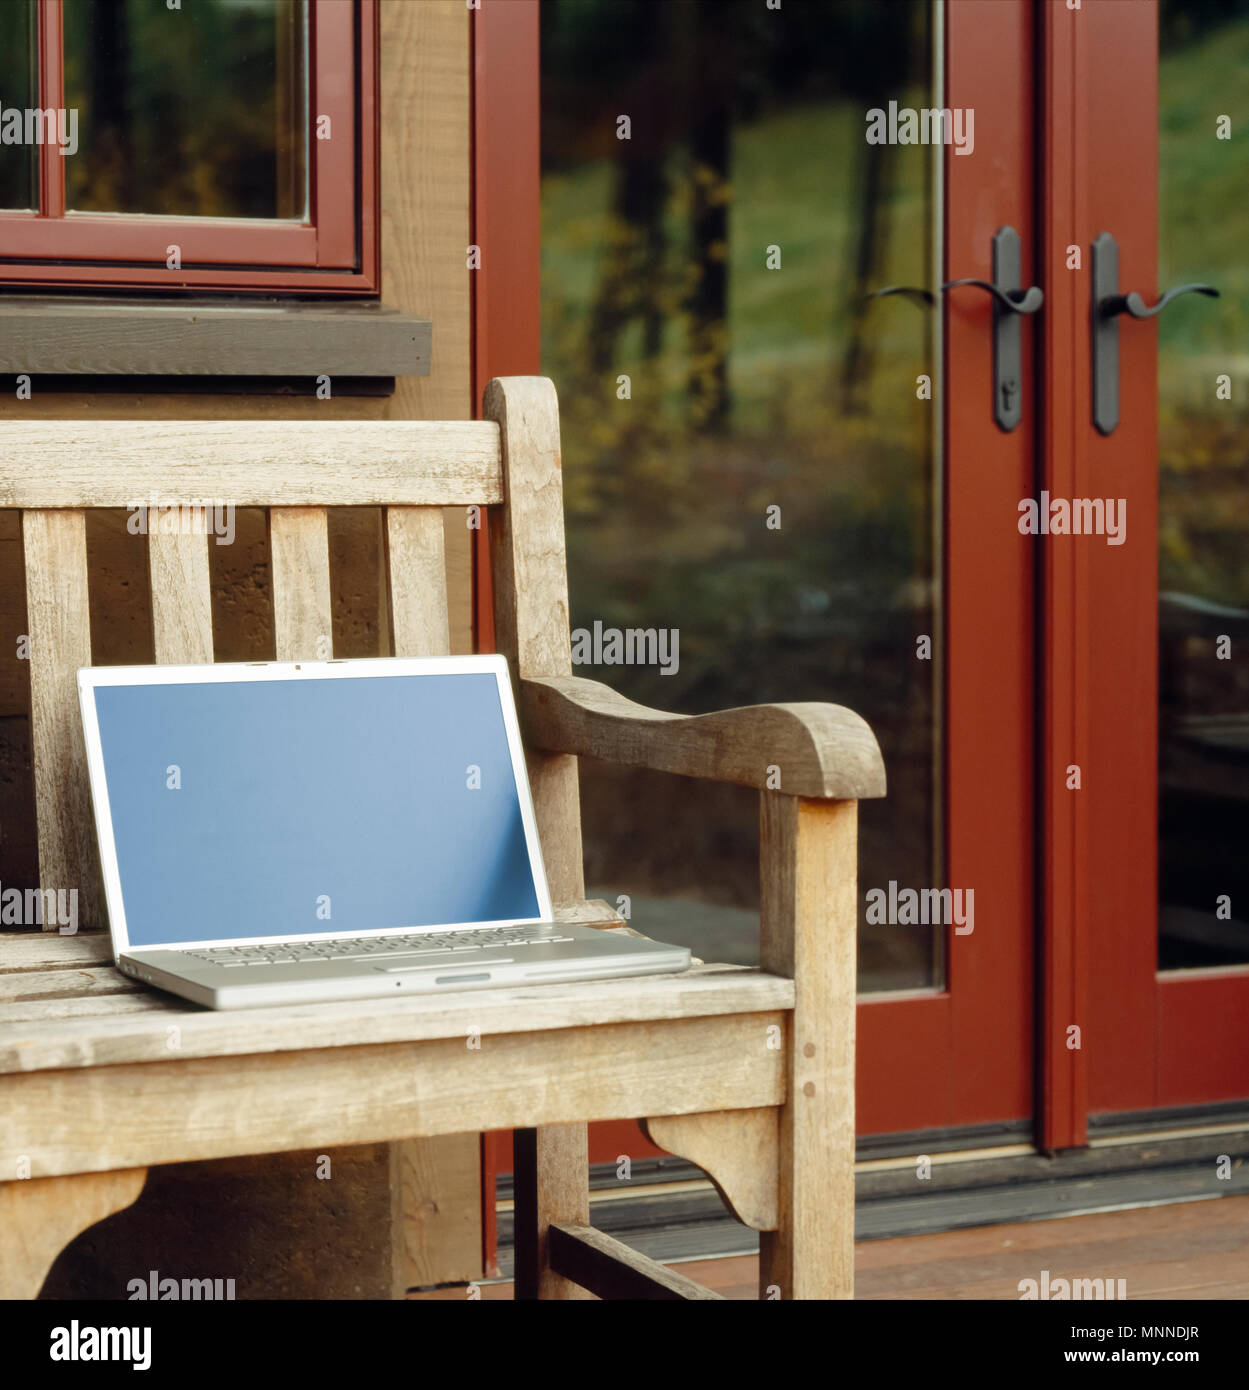 Deck Screen Desk Office Furniture For Laptop Computer With Blank Screen On Wooden Bench Deck Or Patio Of Upscale Home Resort Mobile Office Working Using Wireless Technology Outdoors